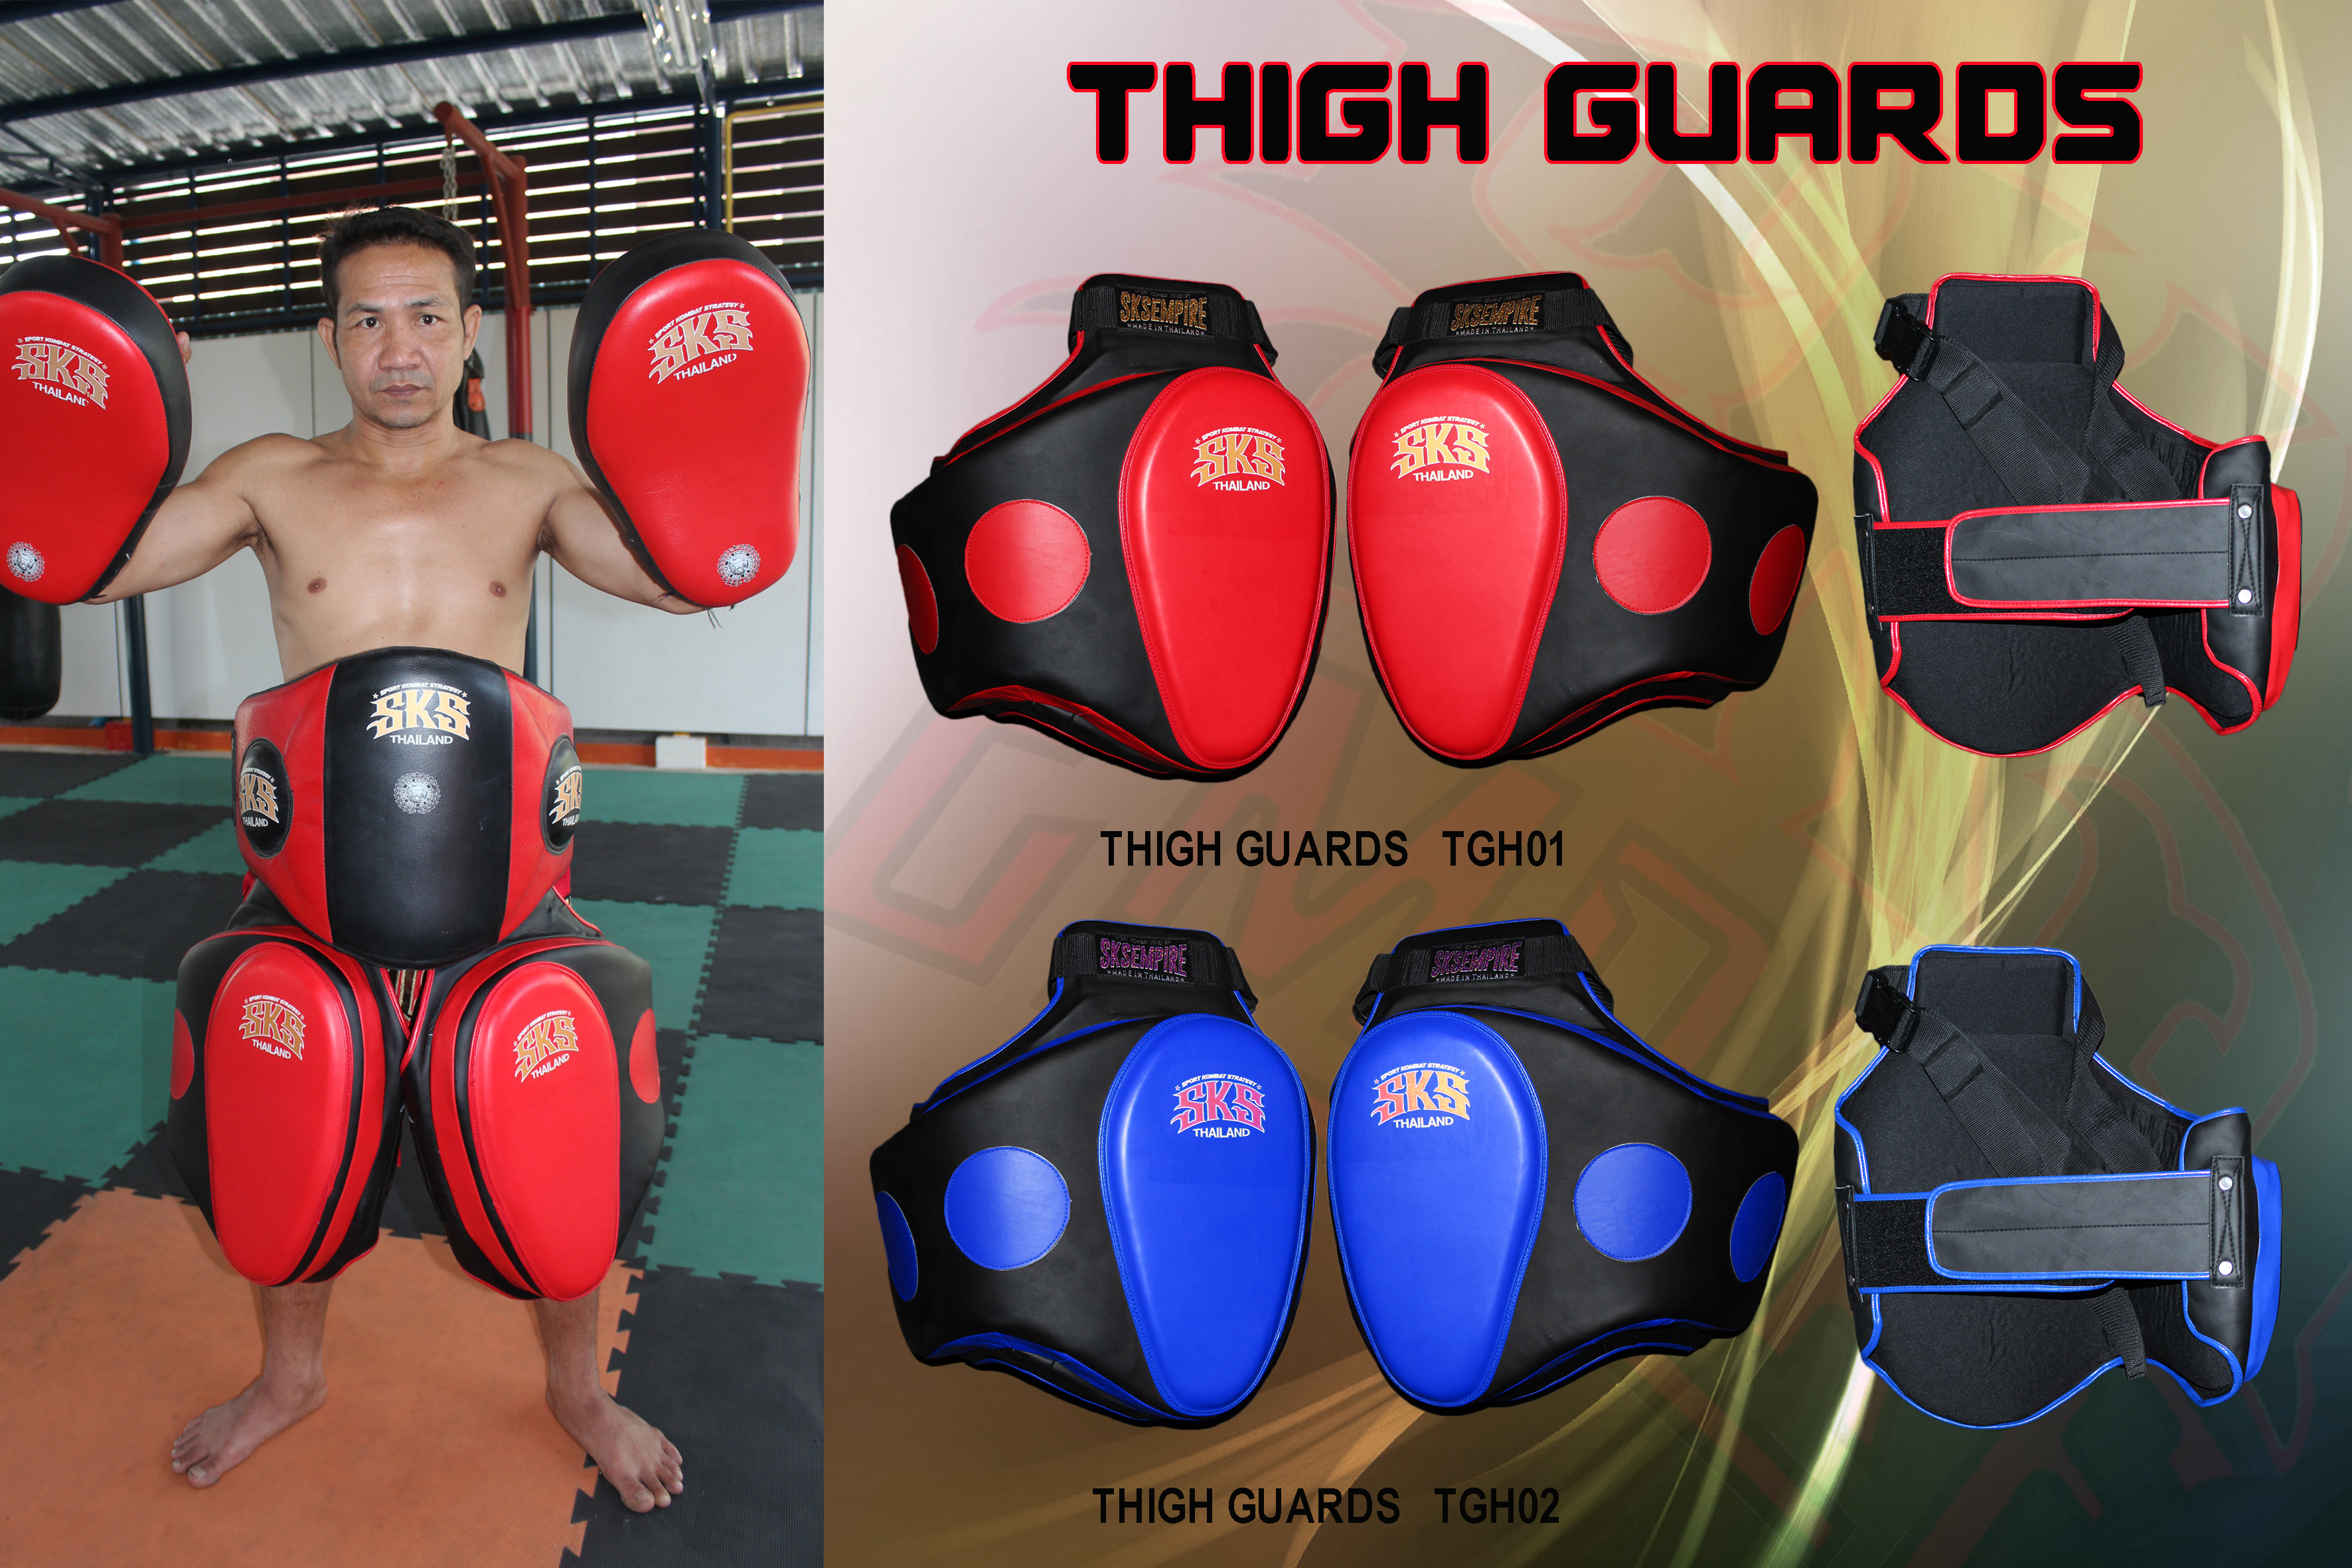 THIGH GUARDS